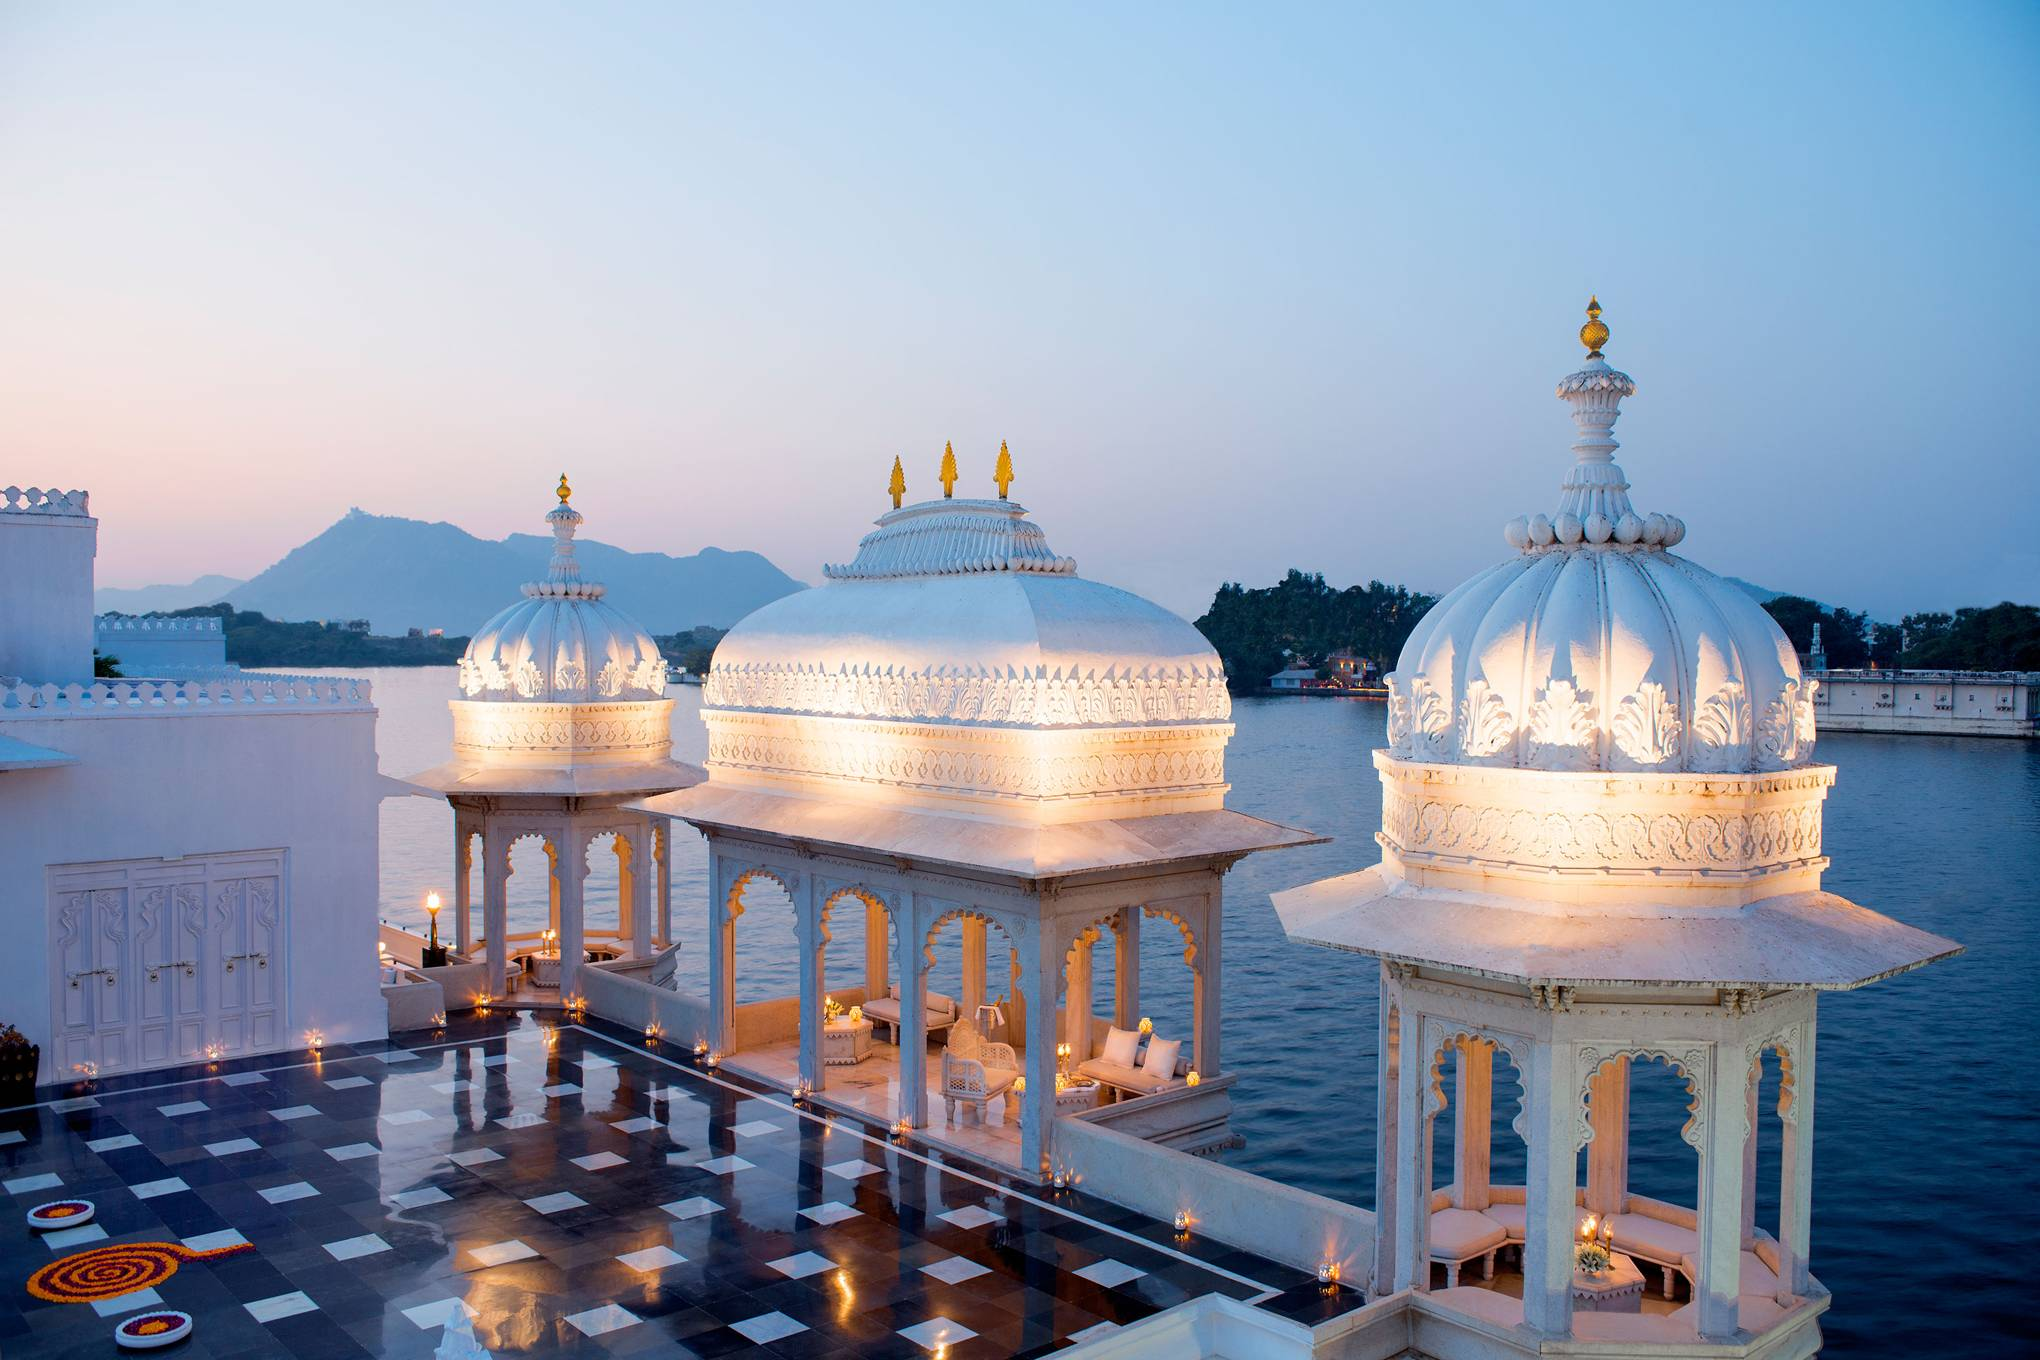 20 Best Hotels In Asia And The Indian Subcontinent 2018 Readers Travel Awards Cn Traveller